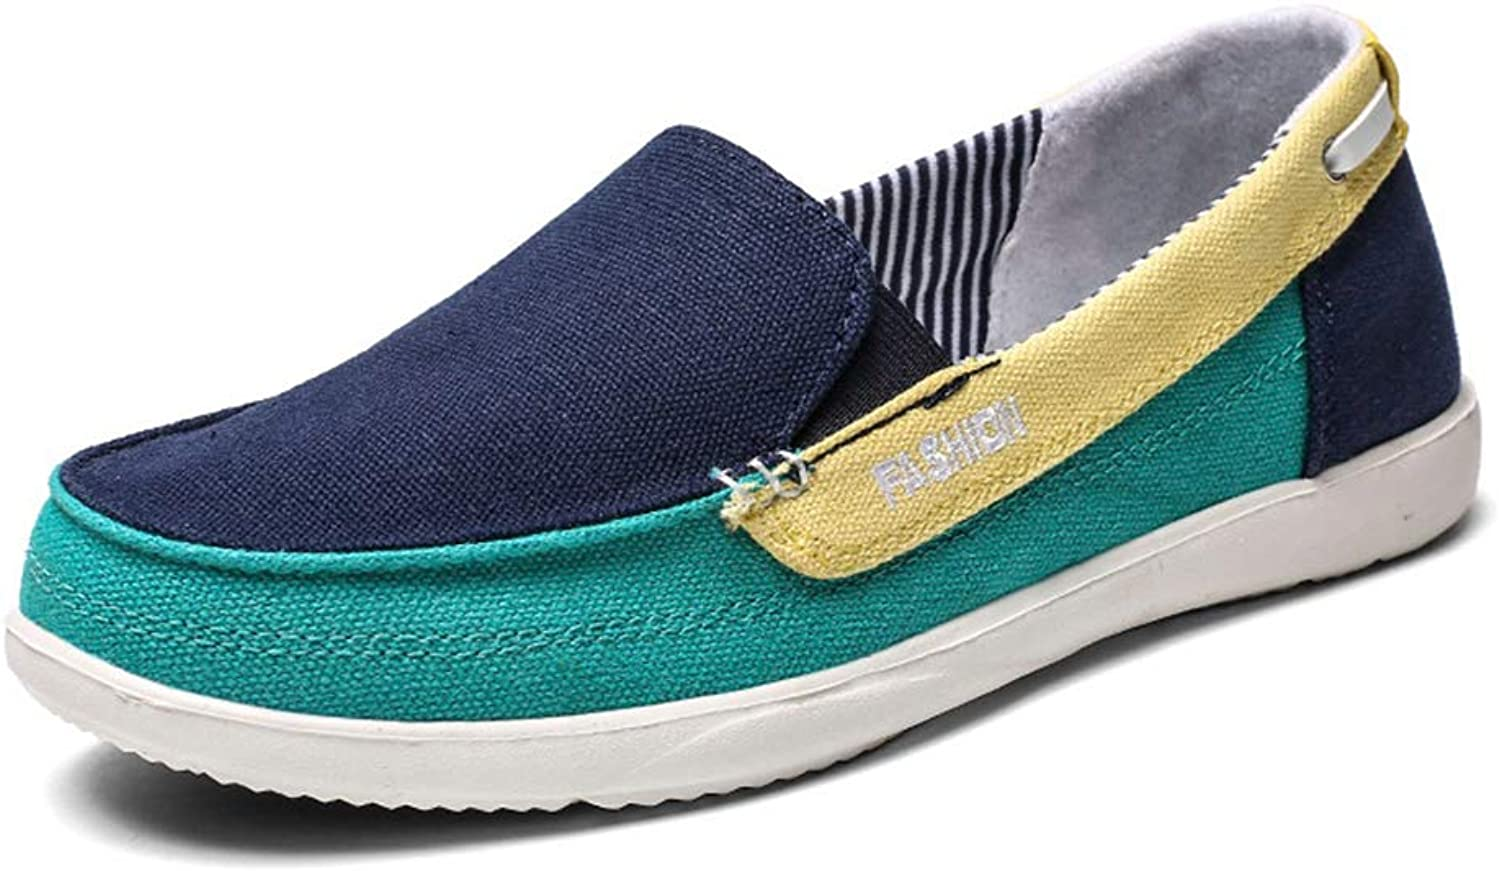 JOYBI Women Round Toe Flat Loafers Comfortable Wide Non Slip Mixed colors Driving Casual Flats Canvas shoes